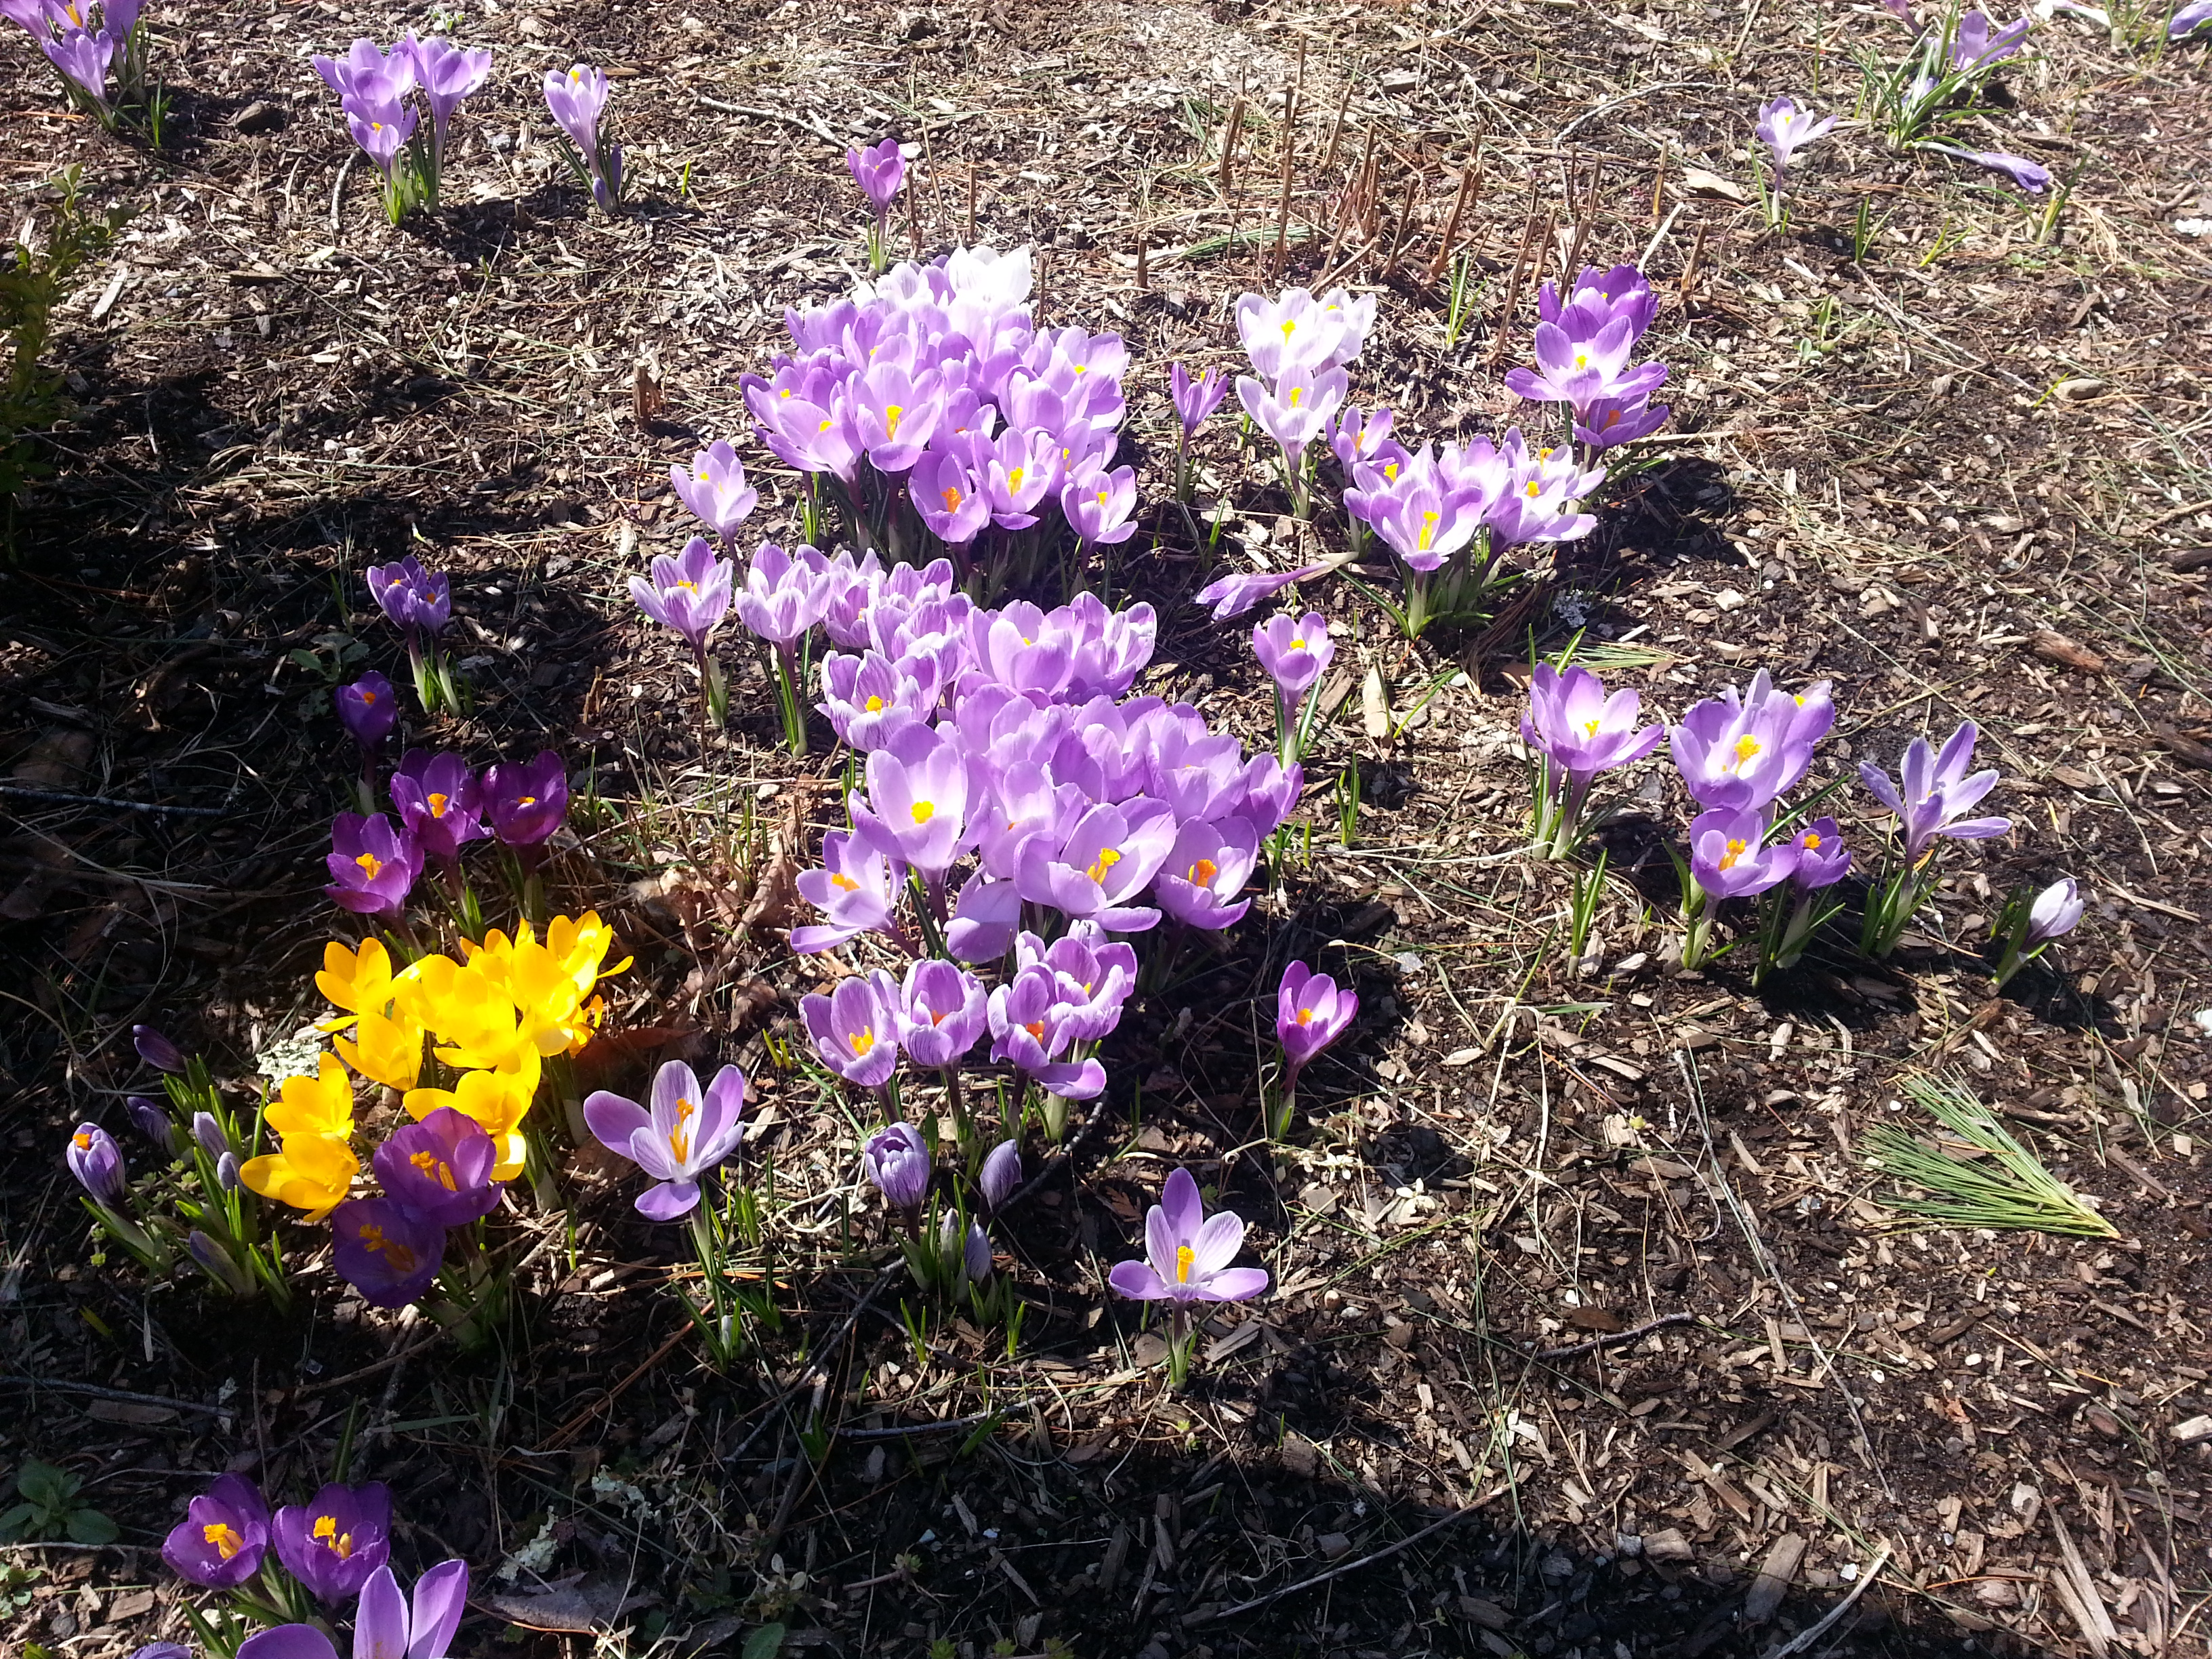 Crocuses bloom at last after a cold Maine winter. (c) Karen Hammond